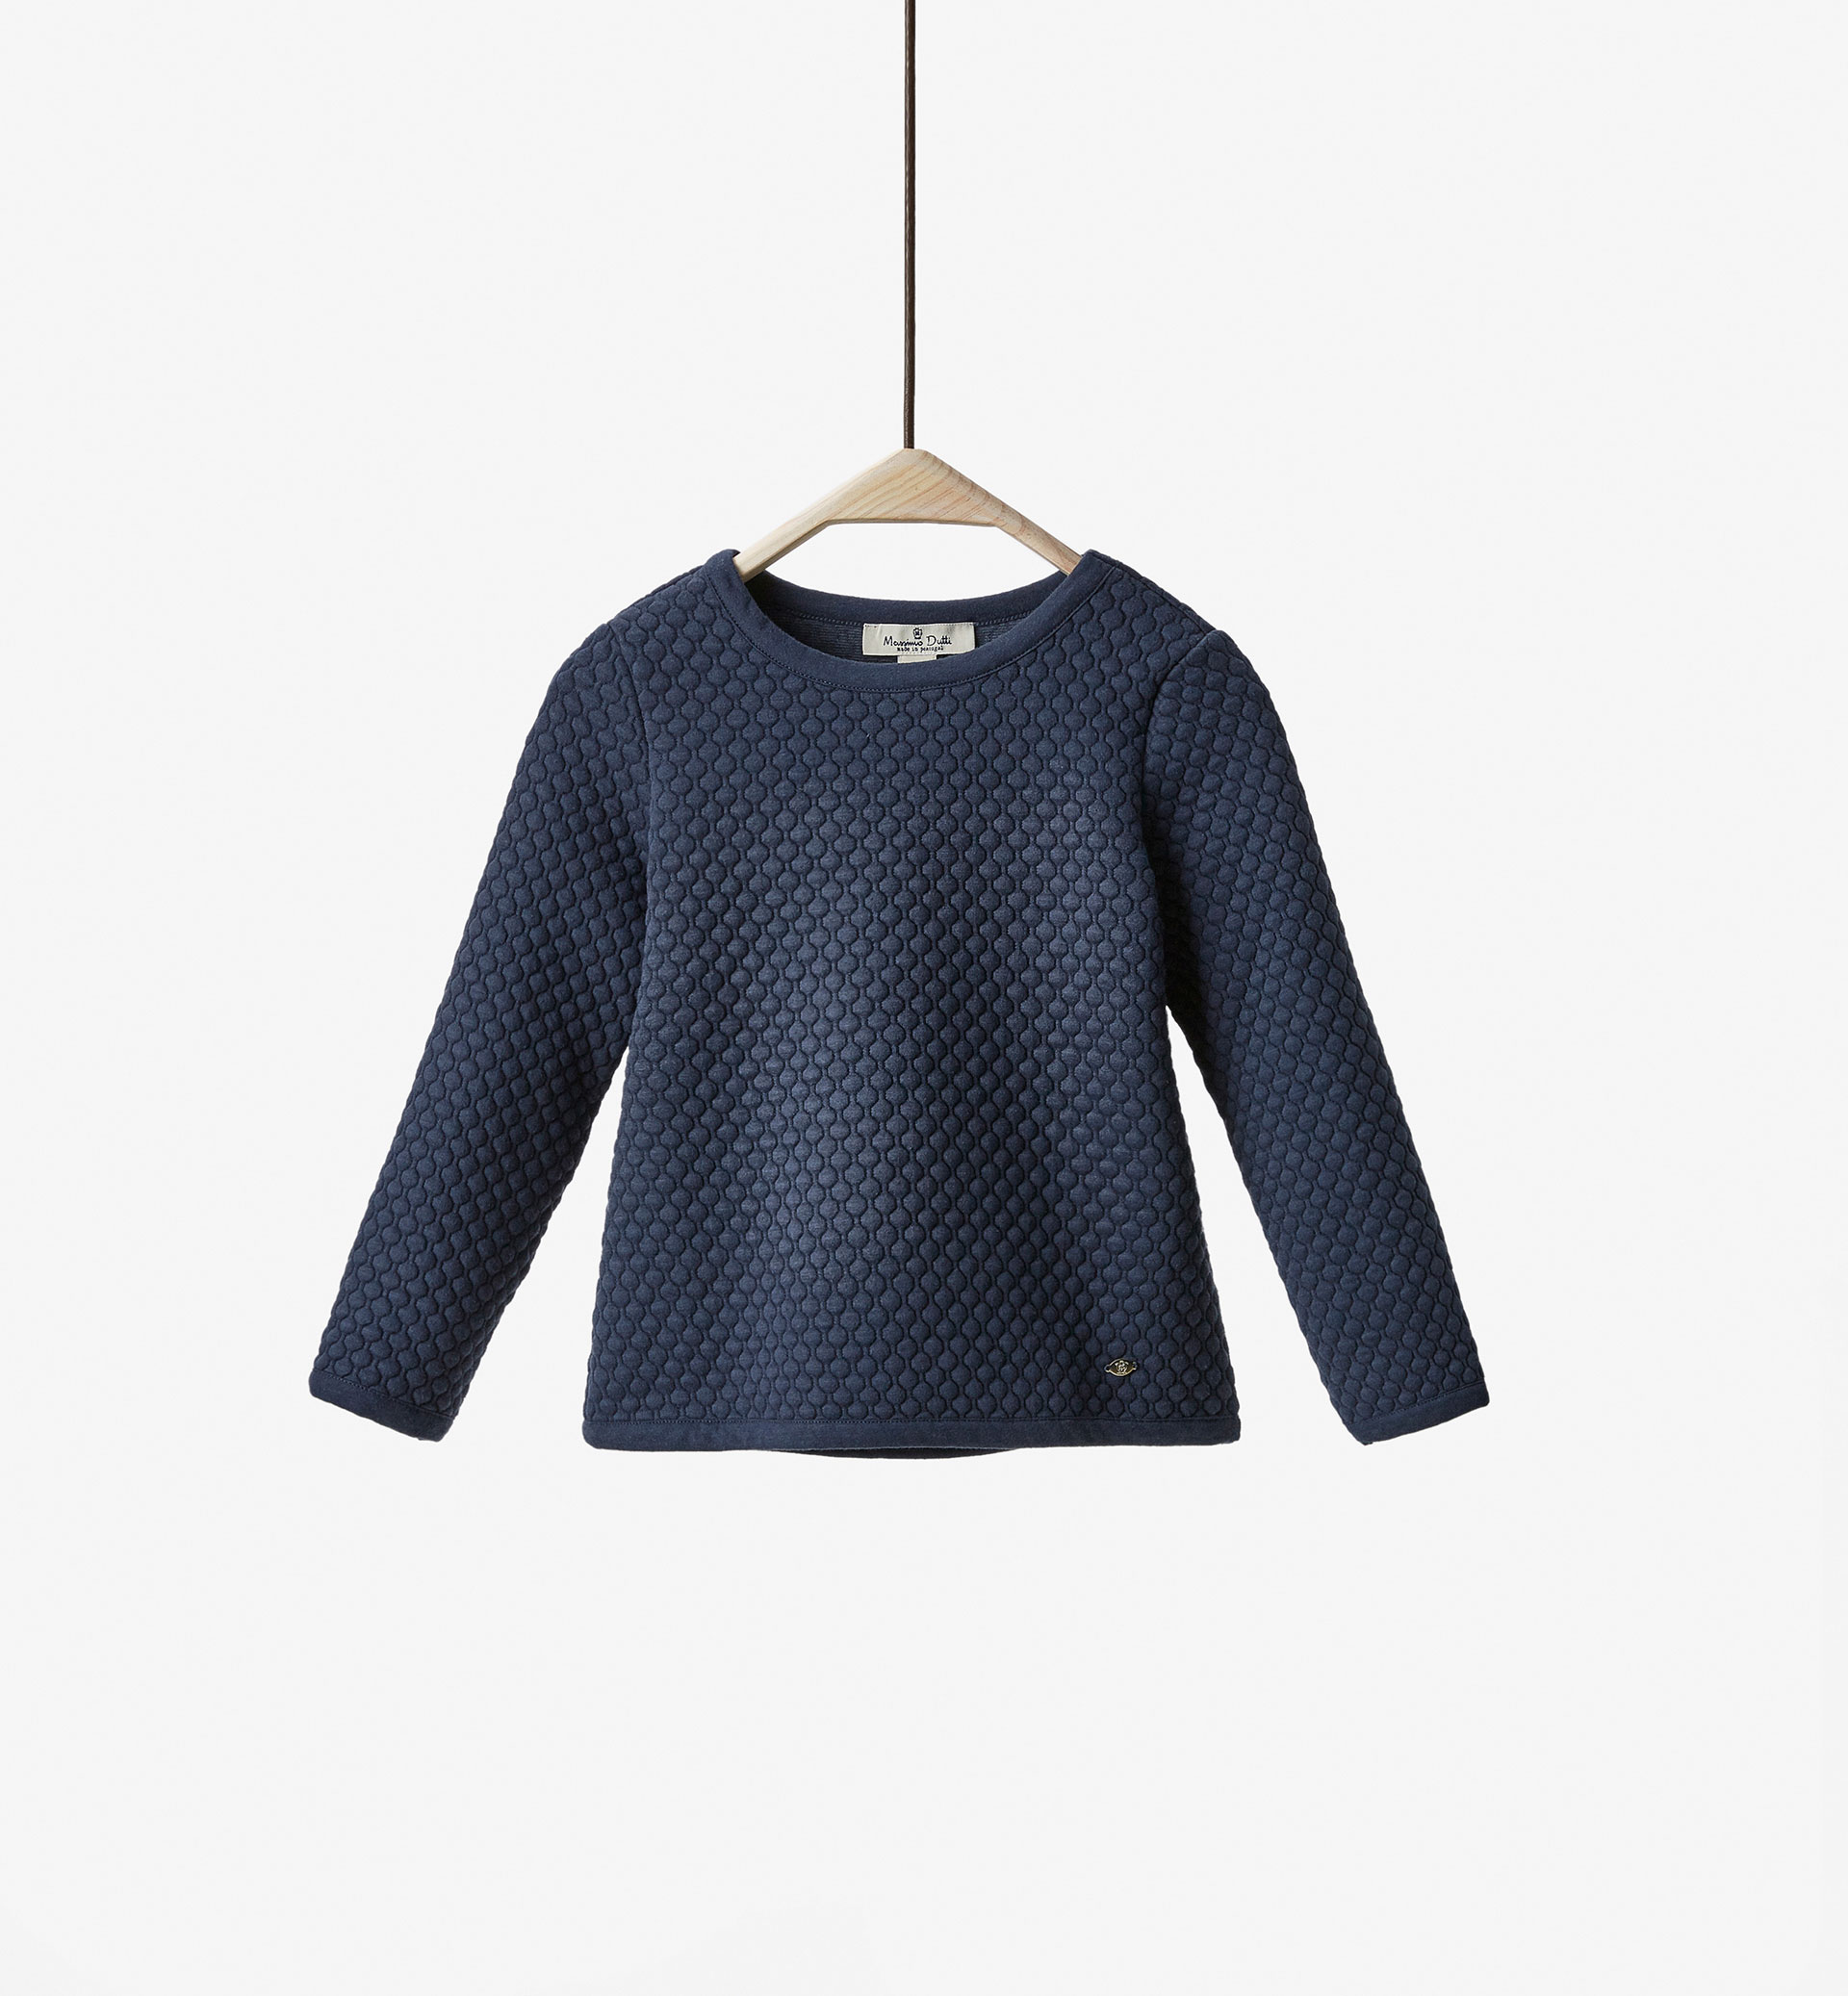 NAVY BLUE TEXTURED WEAVE SWEATSHIRT